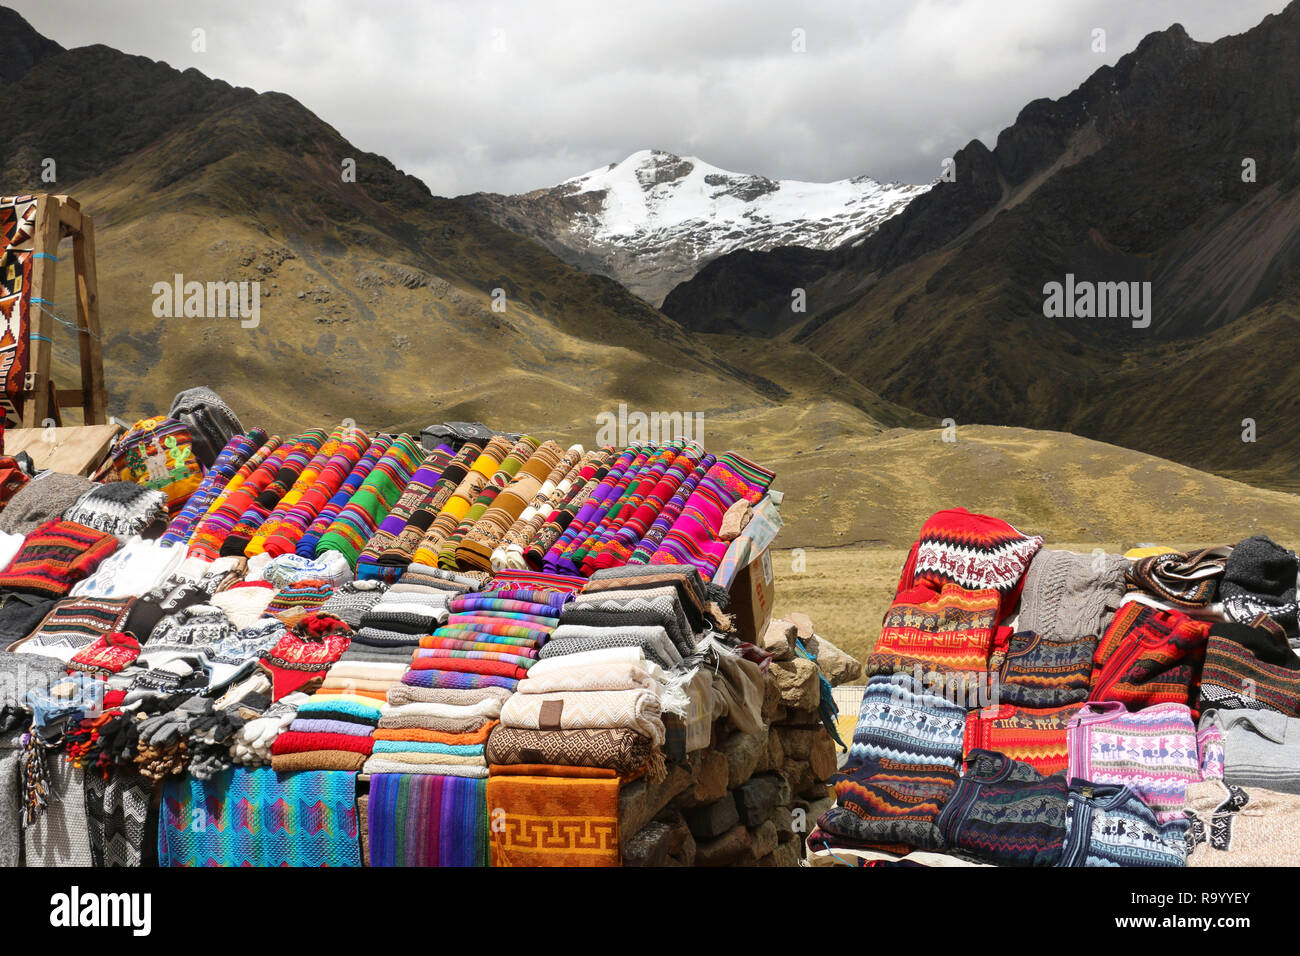 Scarves, hats in traditional style of different colors on the market. The road Cusco-Puno, Peru - Stock Image